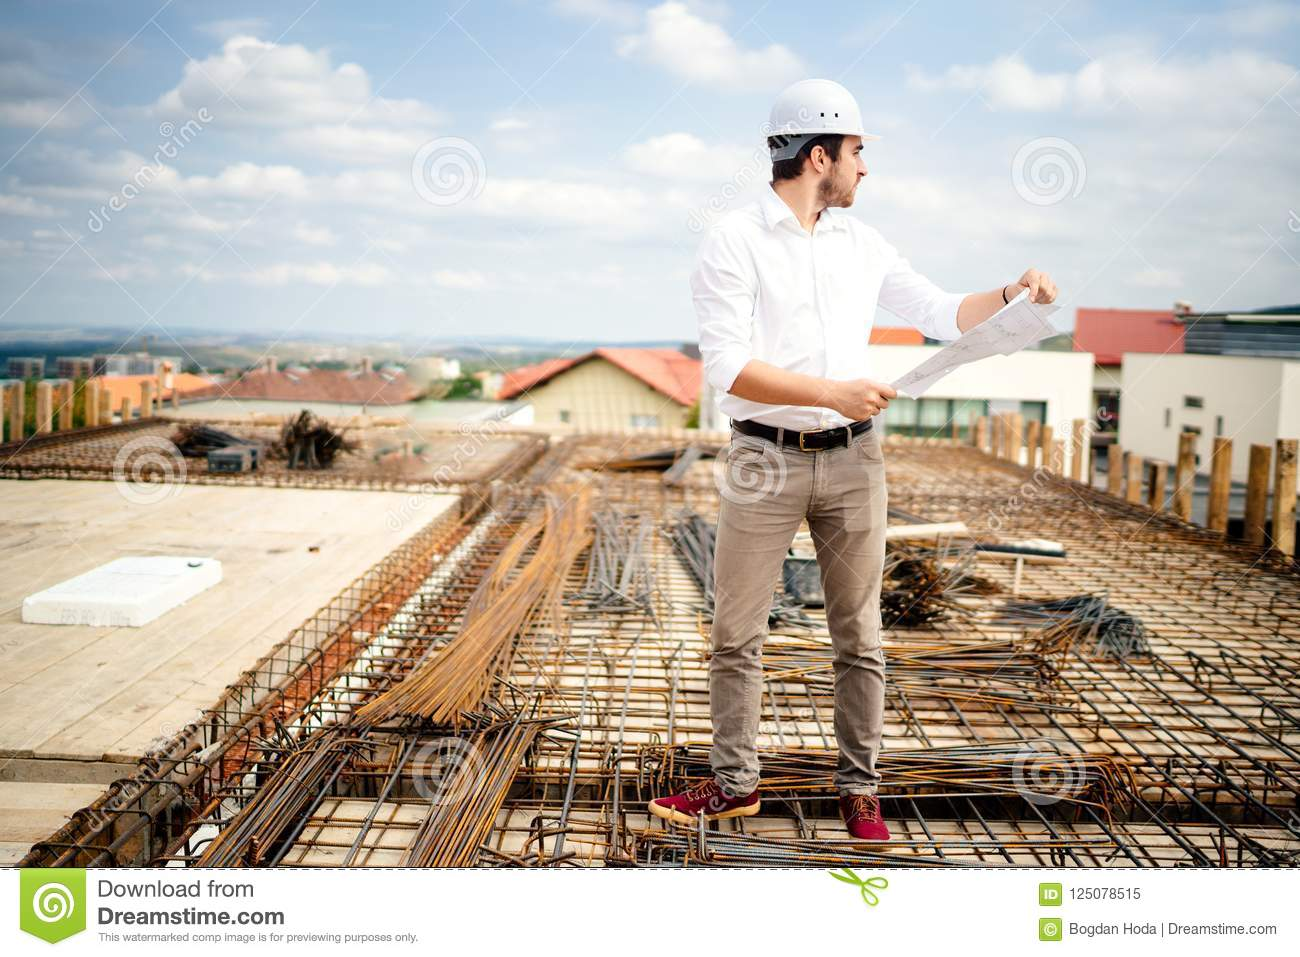 civil engineer working on construction site. Architect and construction industry details